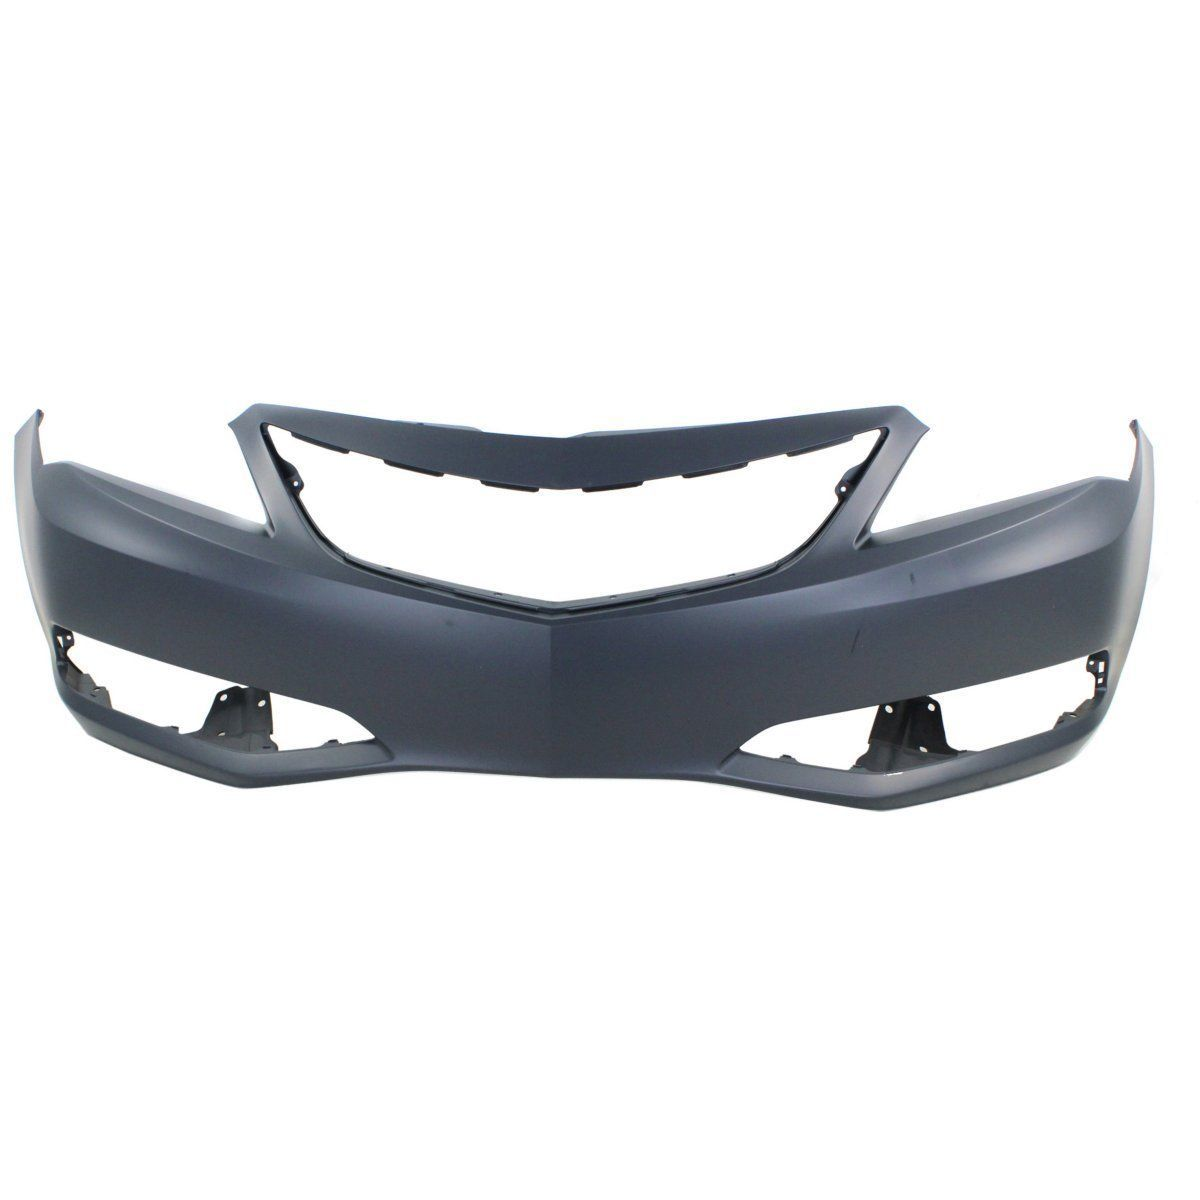 NEW FRONT PRIMERED BUMPER COVER FITS 2013-2015 ACURA RDX AC1000179